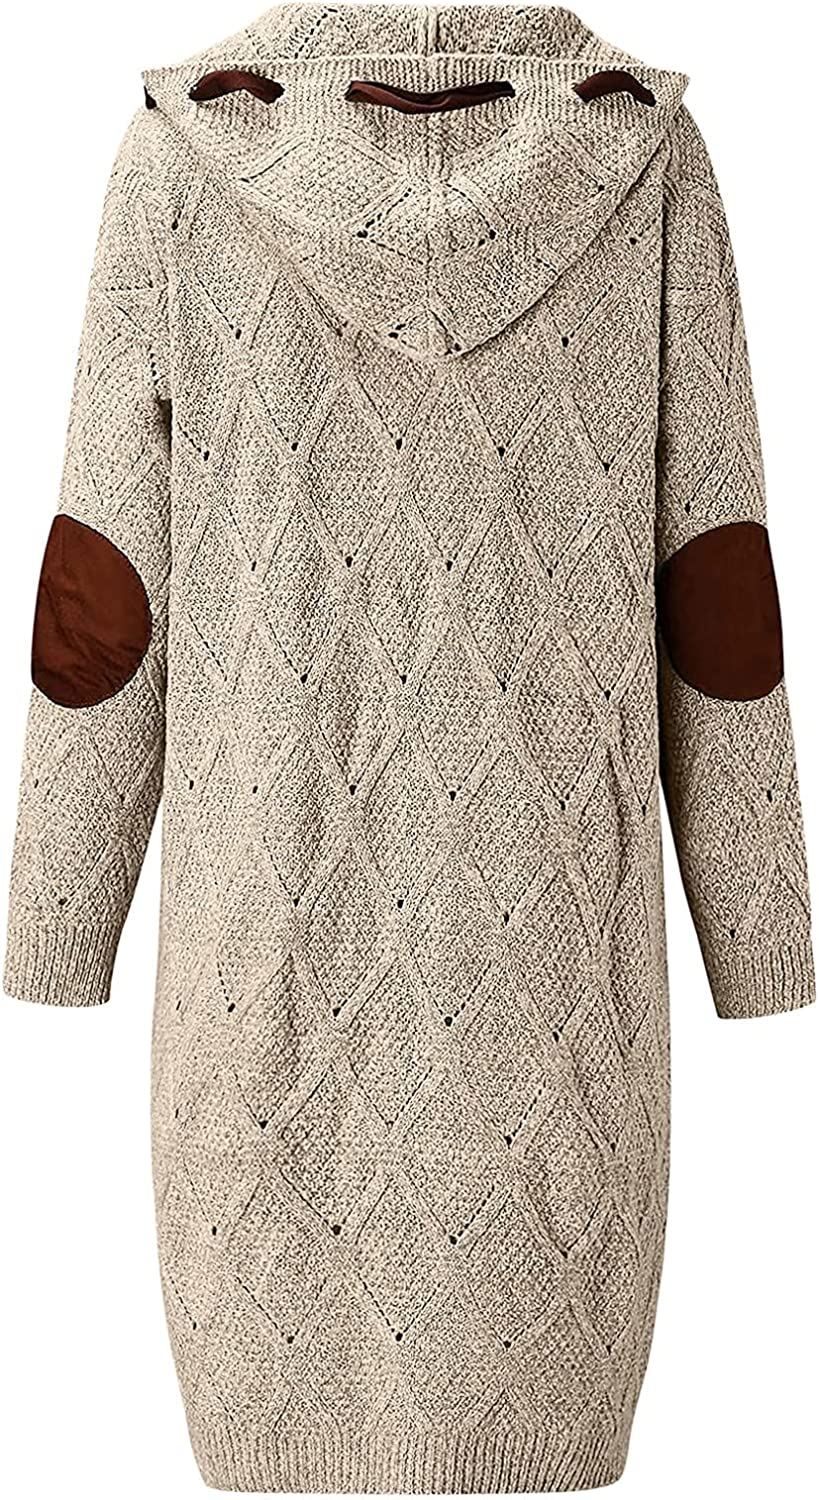 LLONG Women's Long Sleeve Cable Knit Cardigan Hoodie Sweater Casual Open Front Button Down Outwear Coats with Pockets